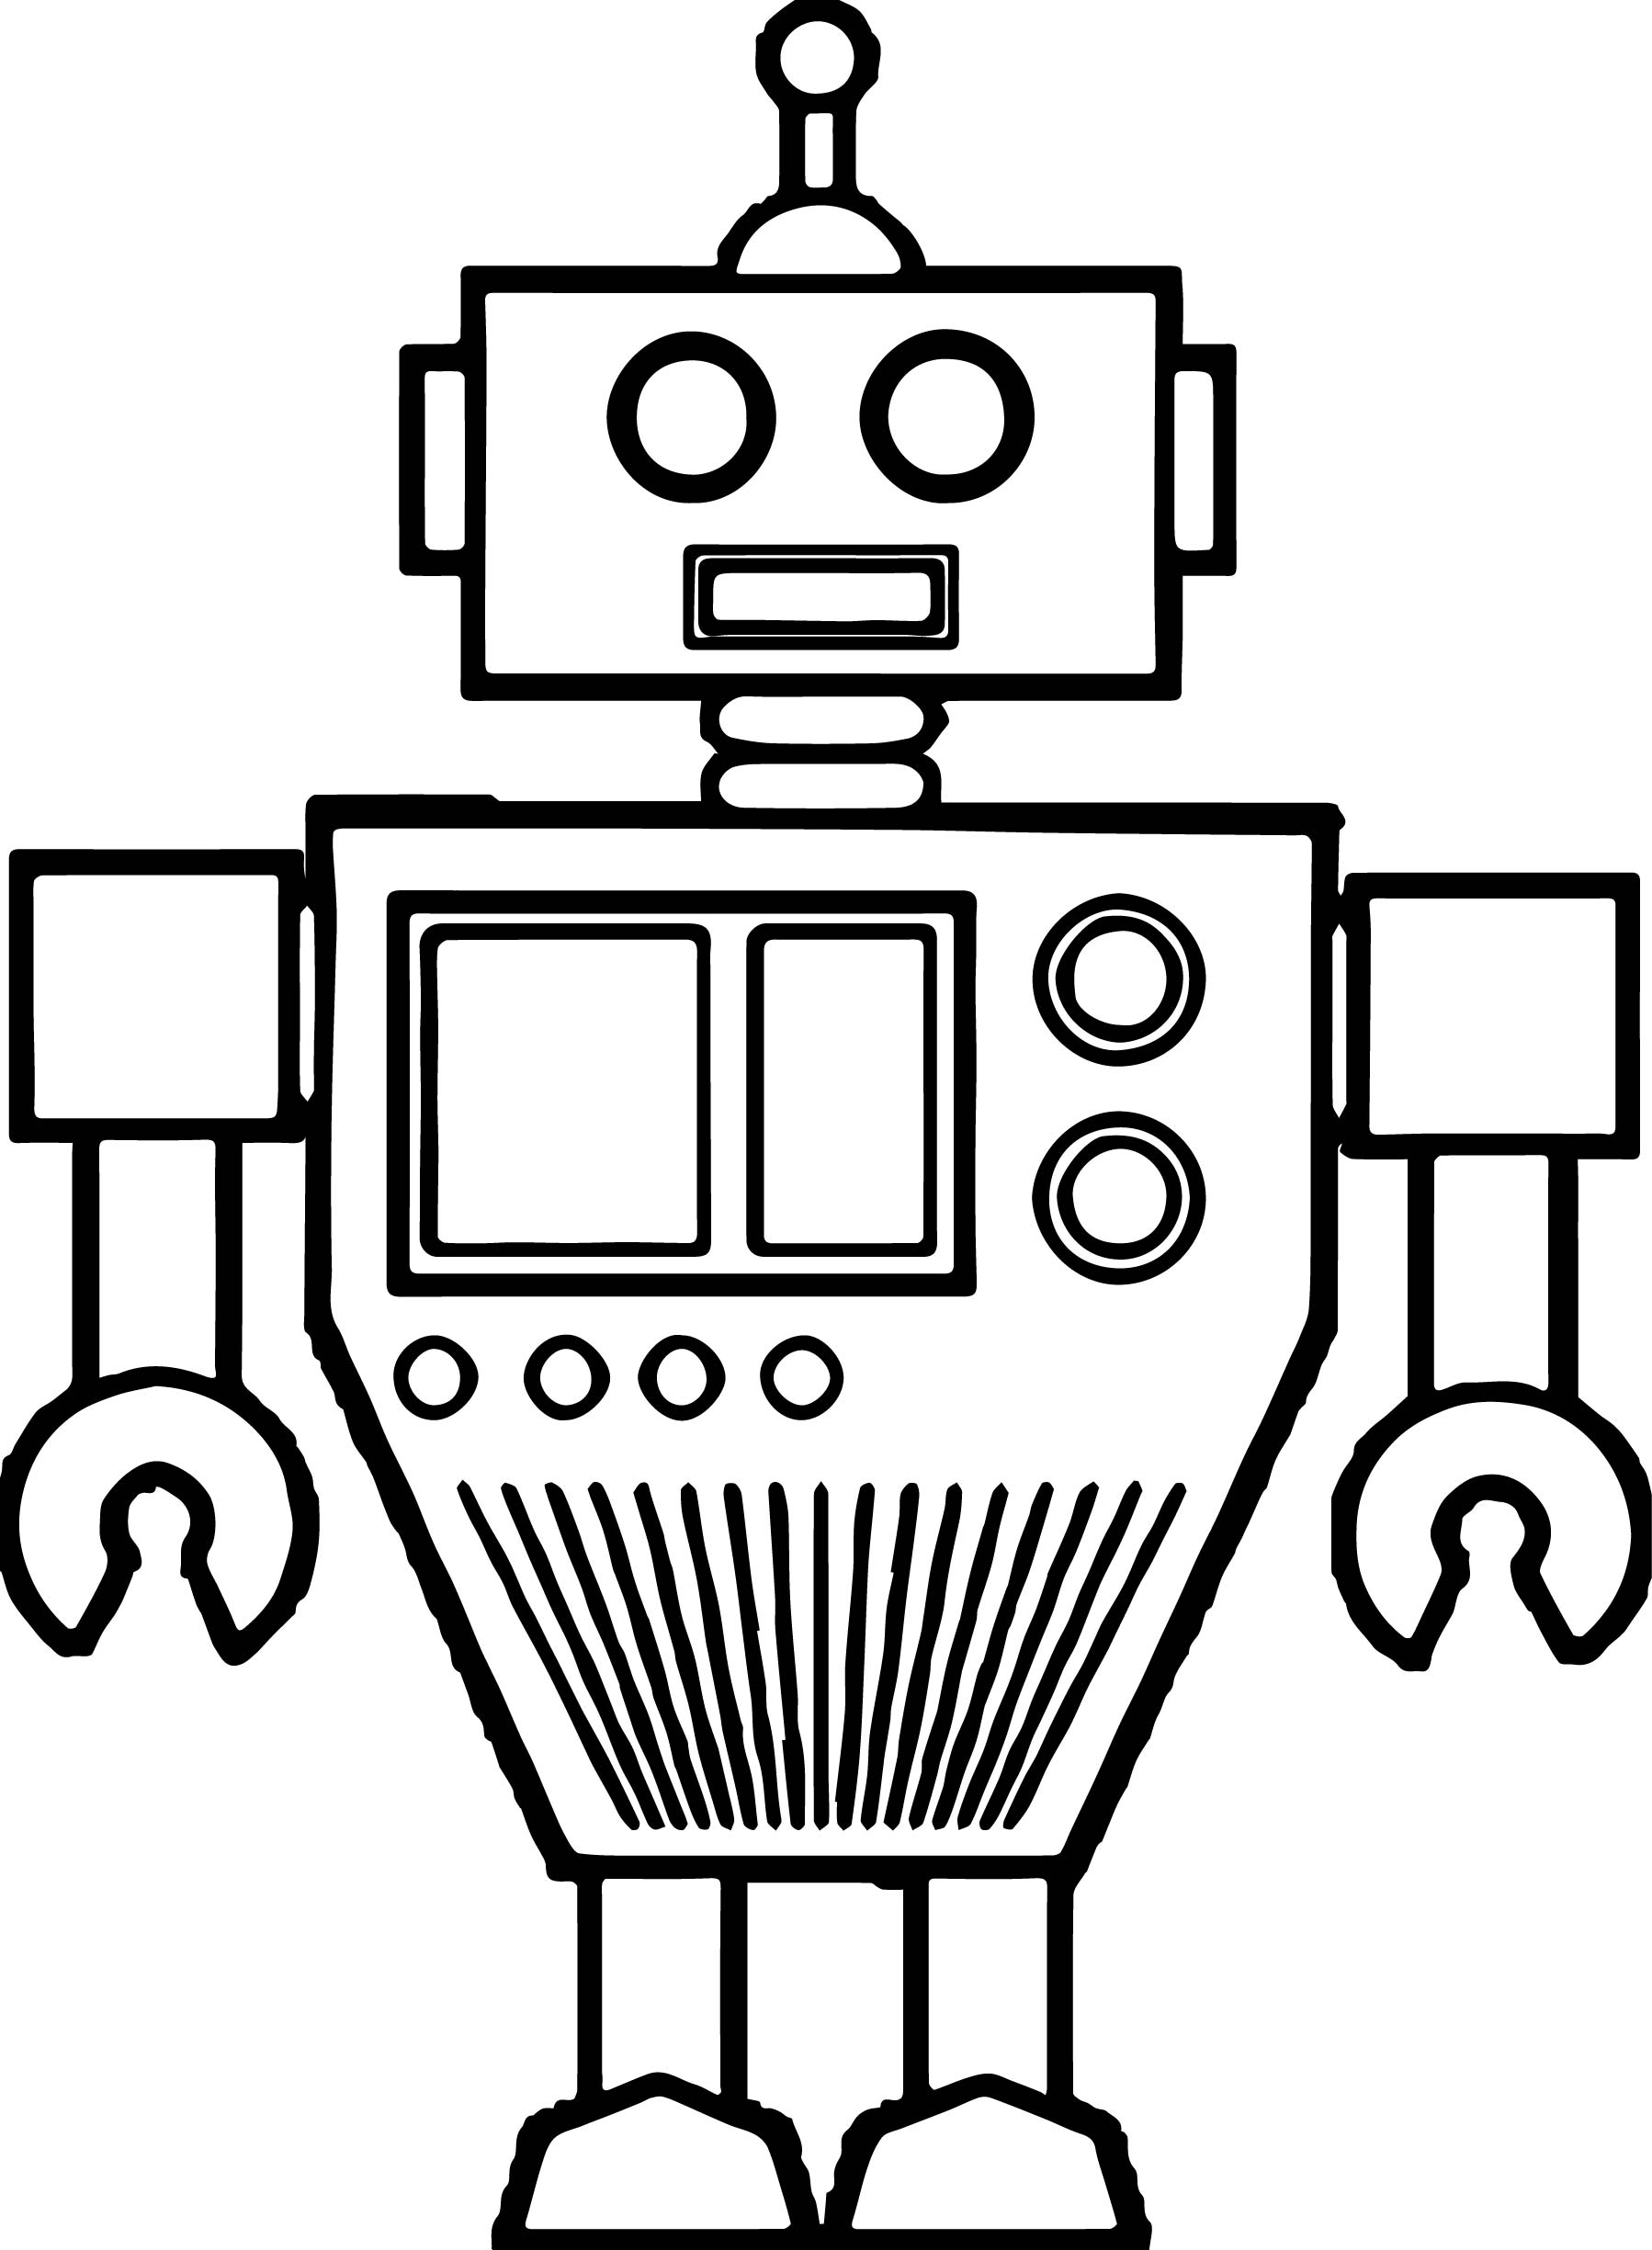 Just Robot Coloring Page